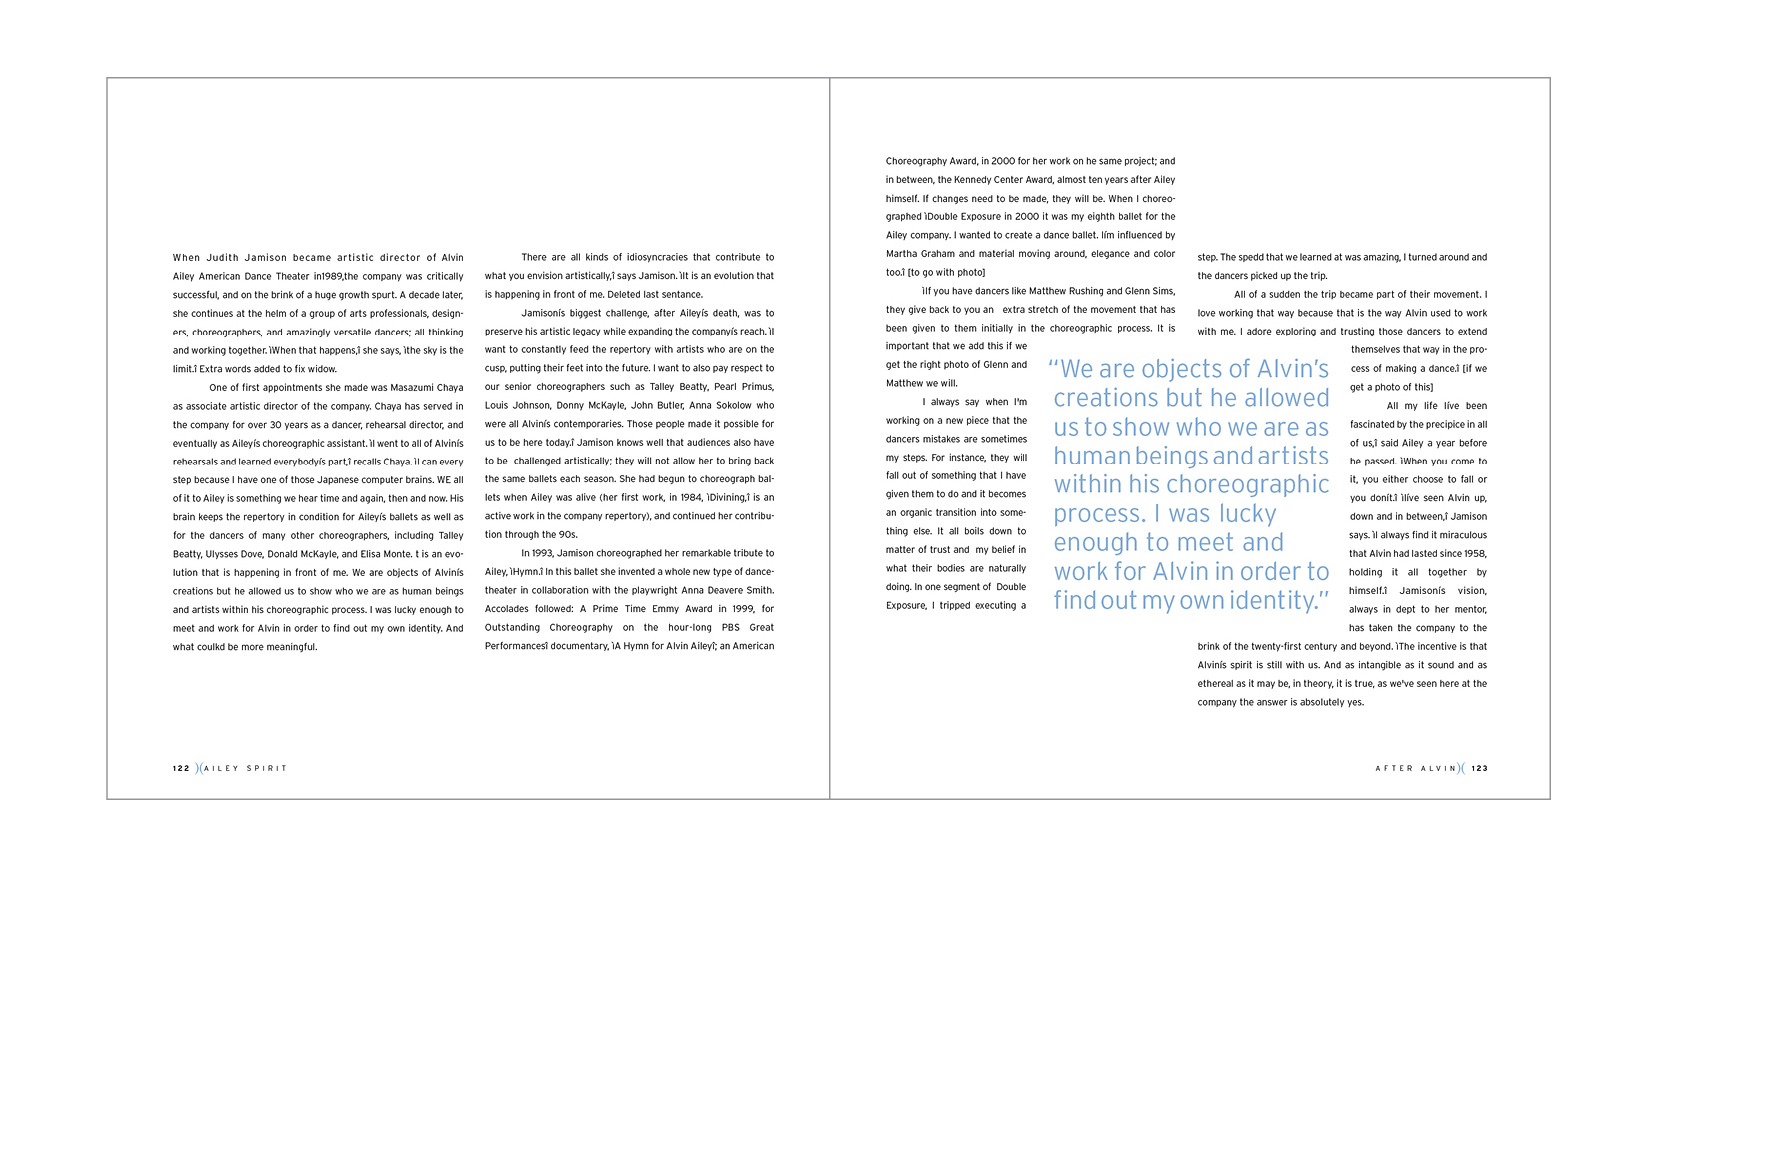 Essay spread -  A short essay introduces each chapter, large pull quotes and wrapping text provide a feeling of movement